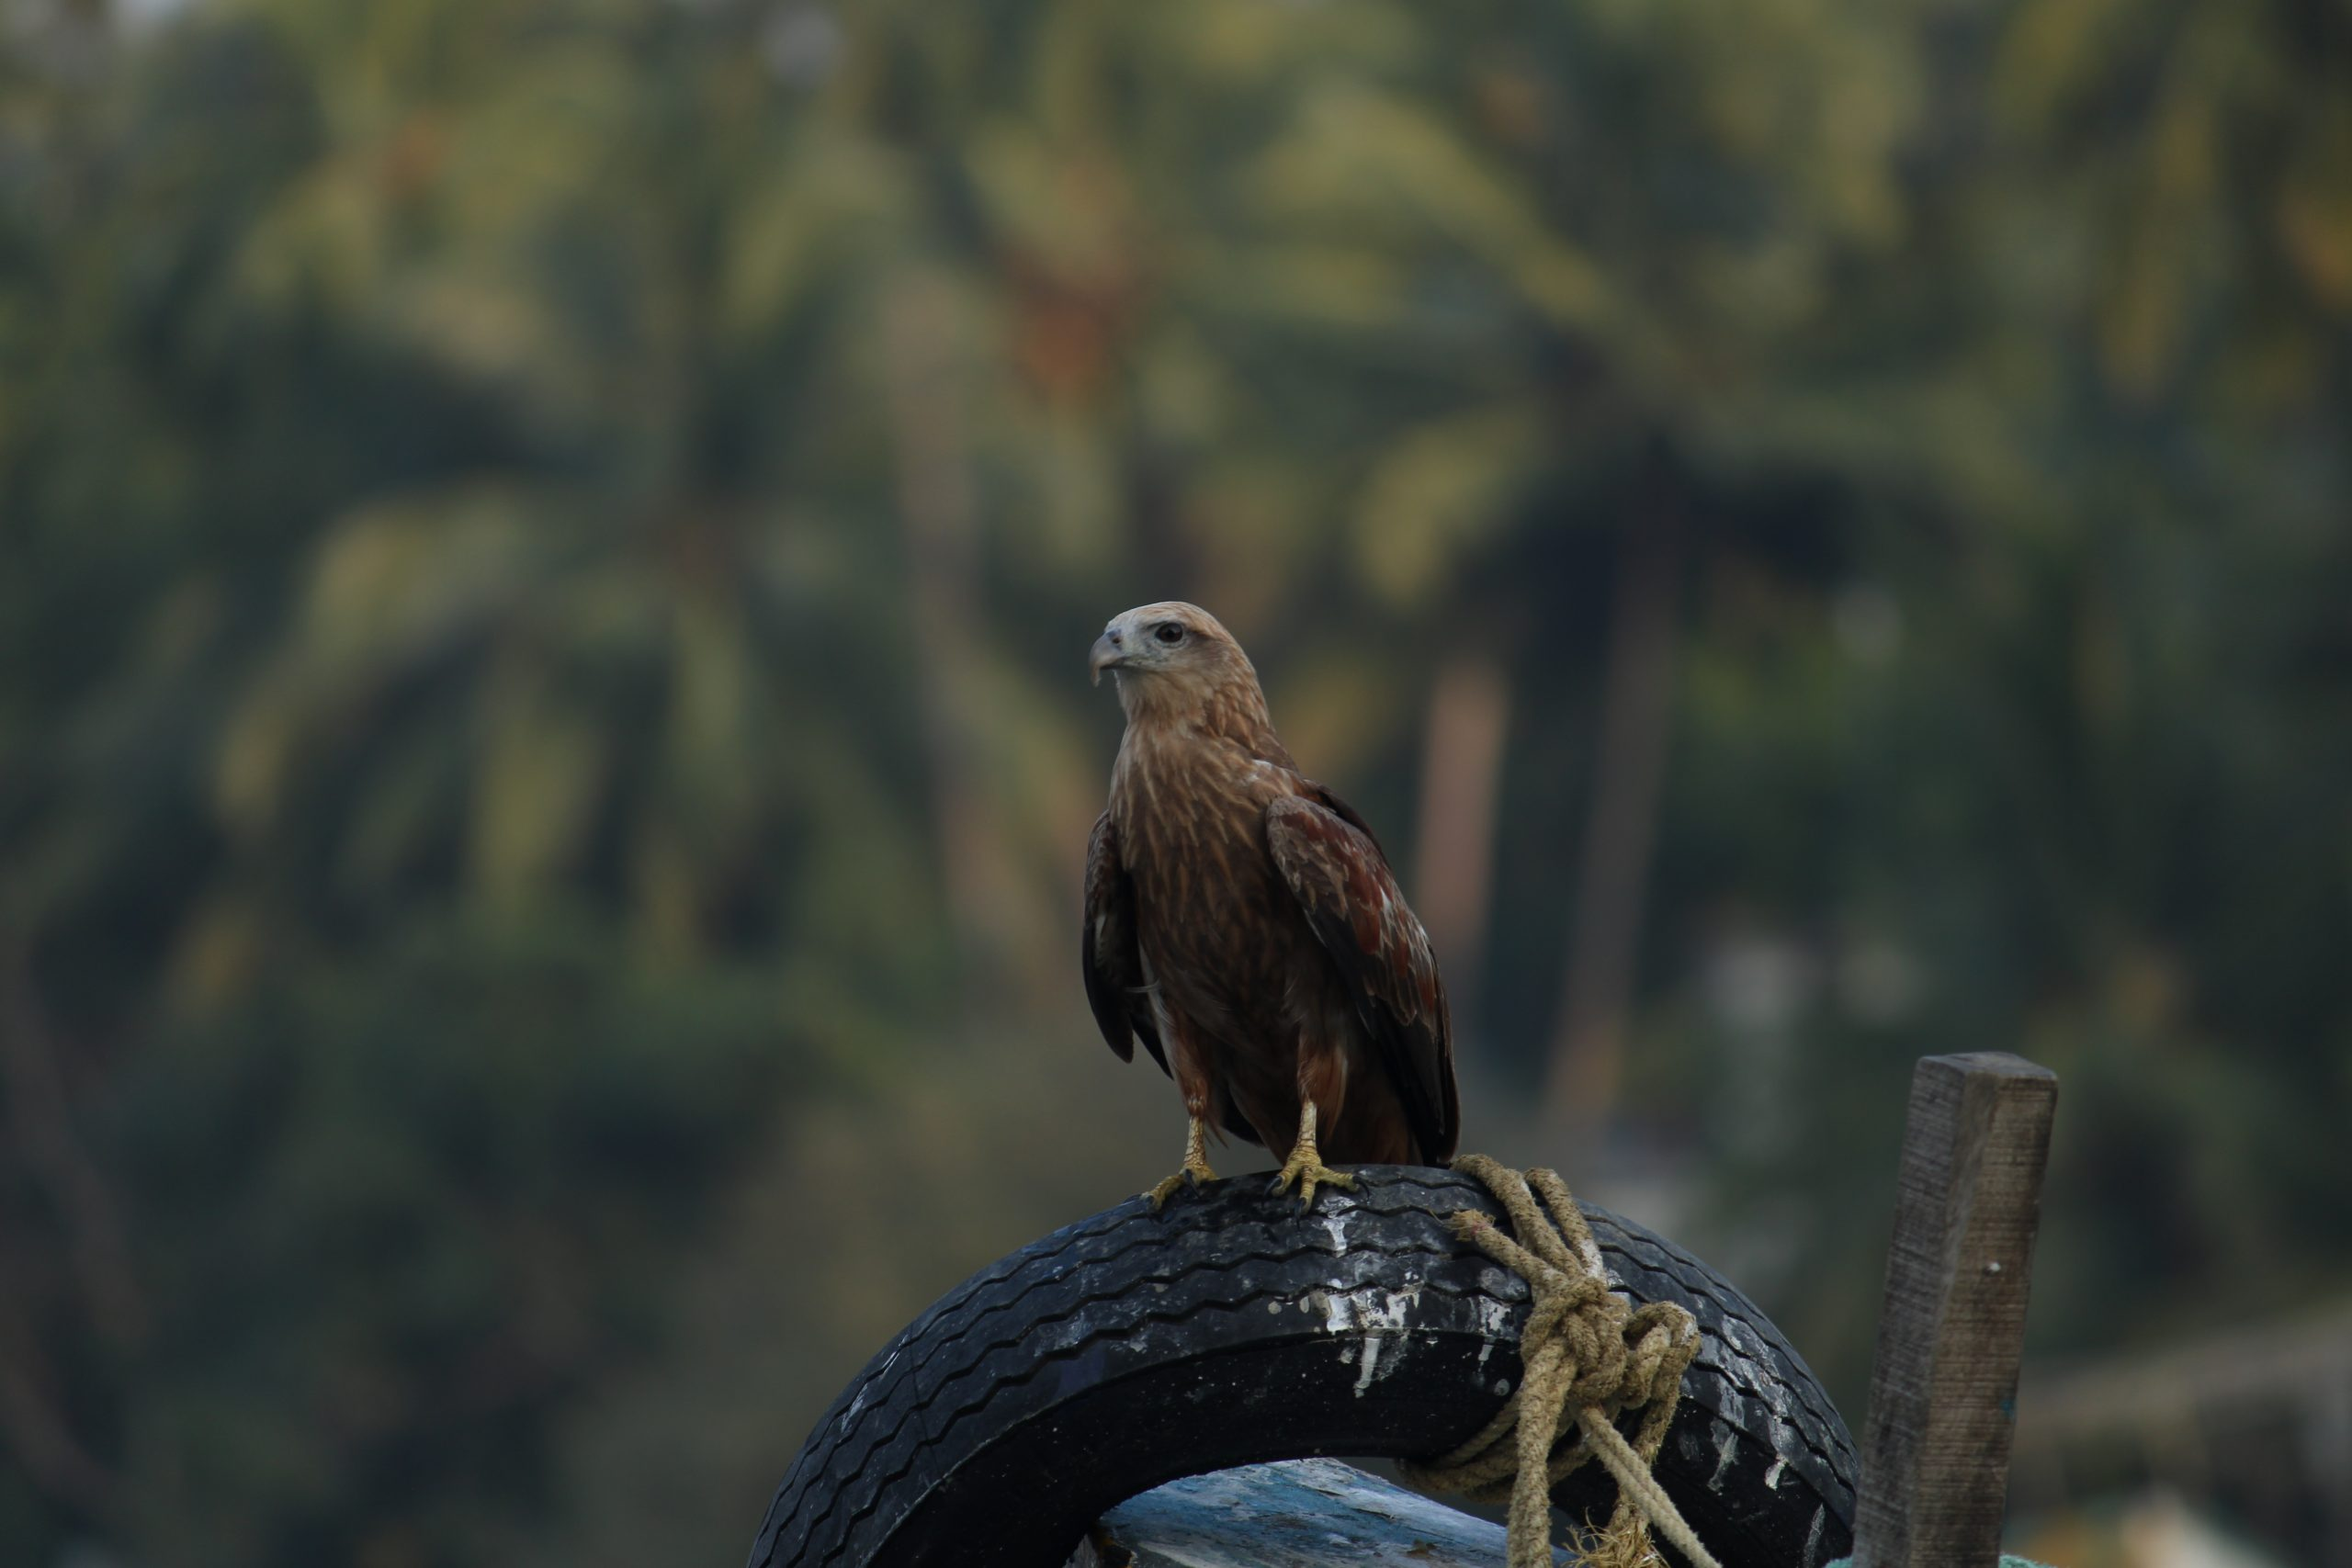 An eagle sitting on tyre